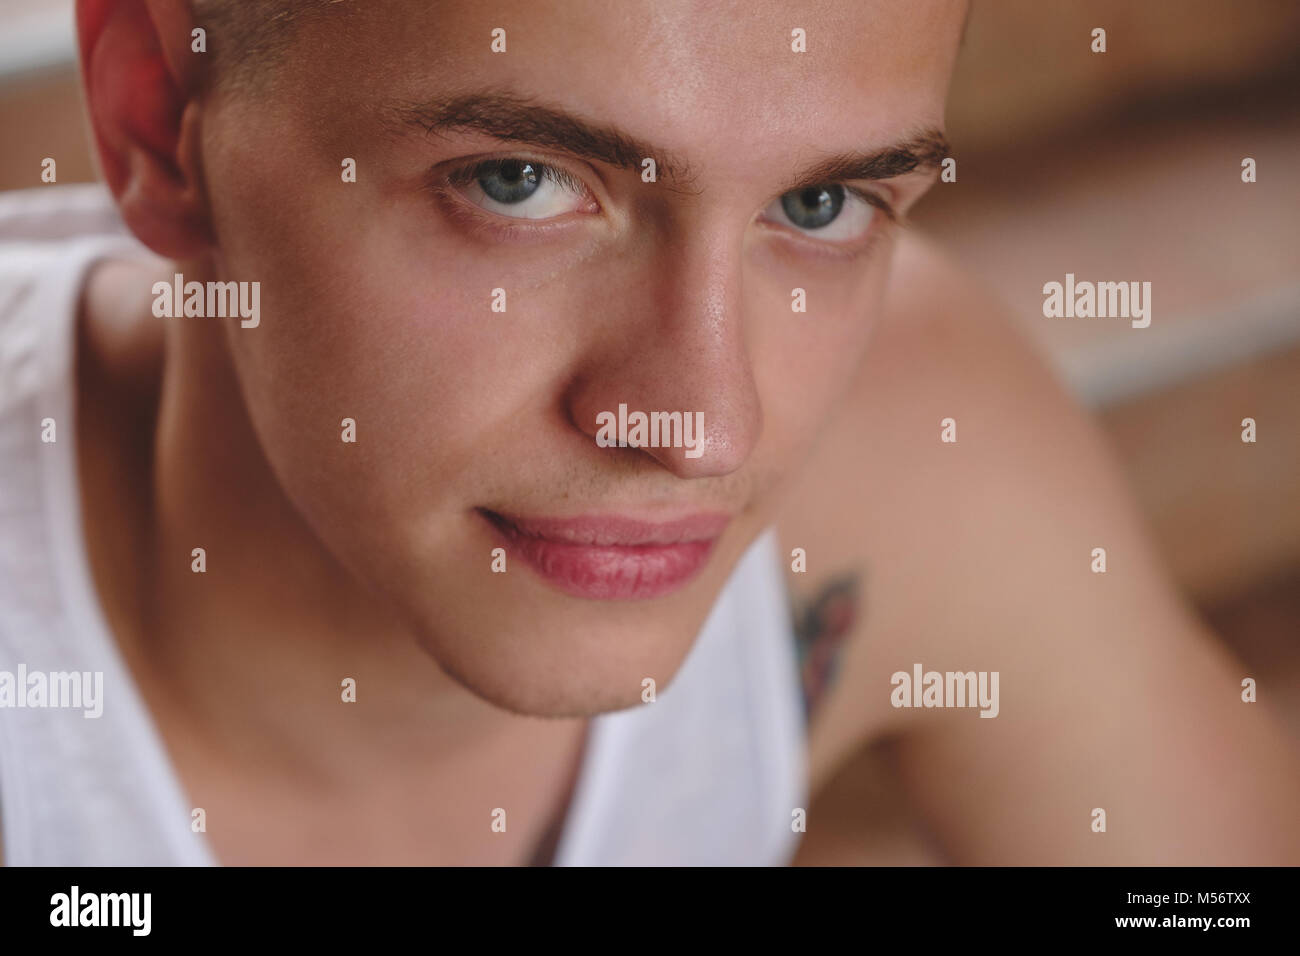 Focused look, face close-up portrait young man - Stock Image